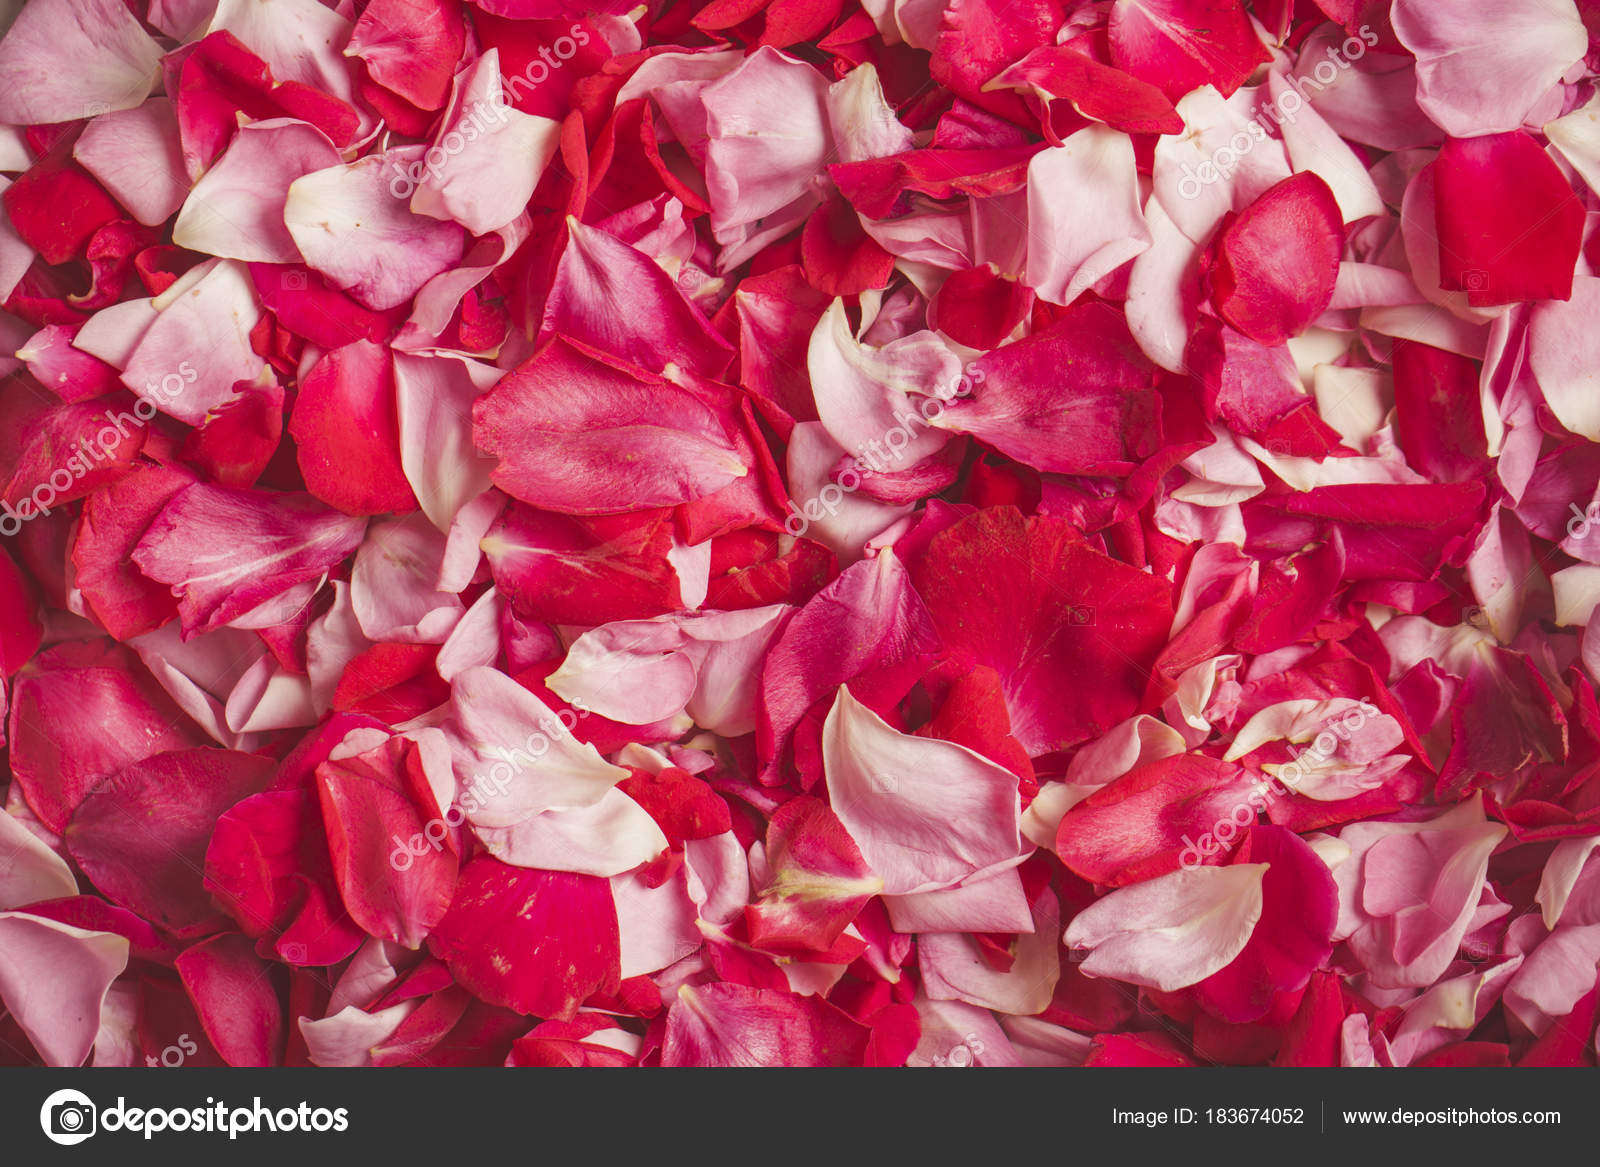 Love Rose Petals Concept Of Valentine Day Wedding Day Sweet Love